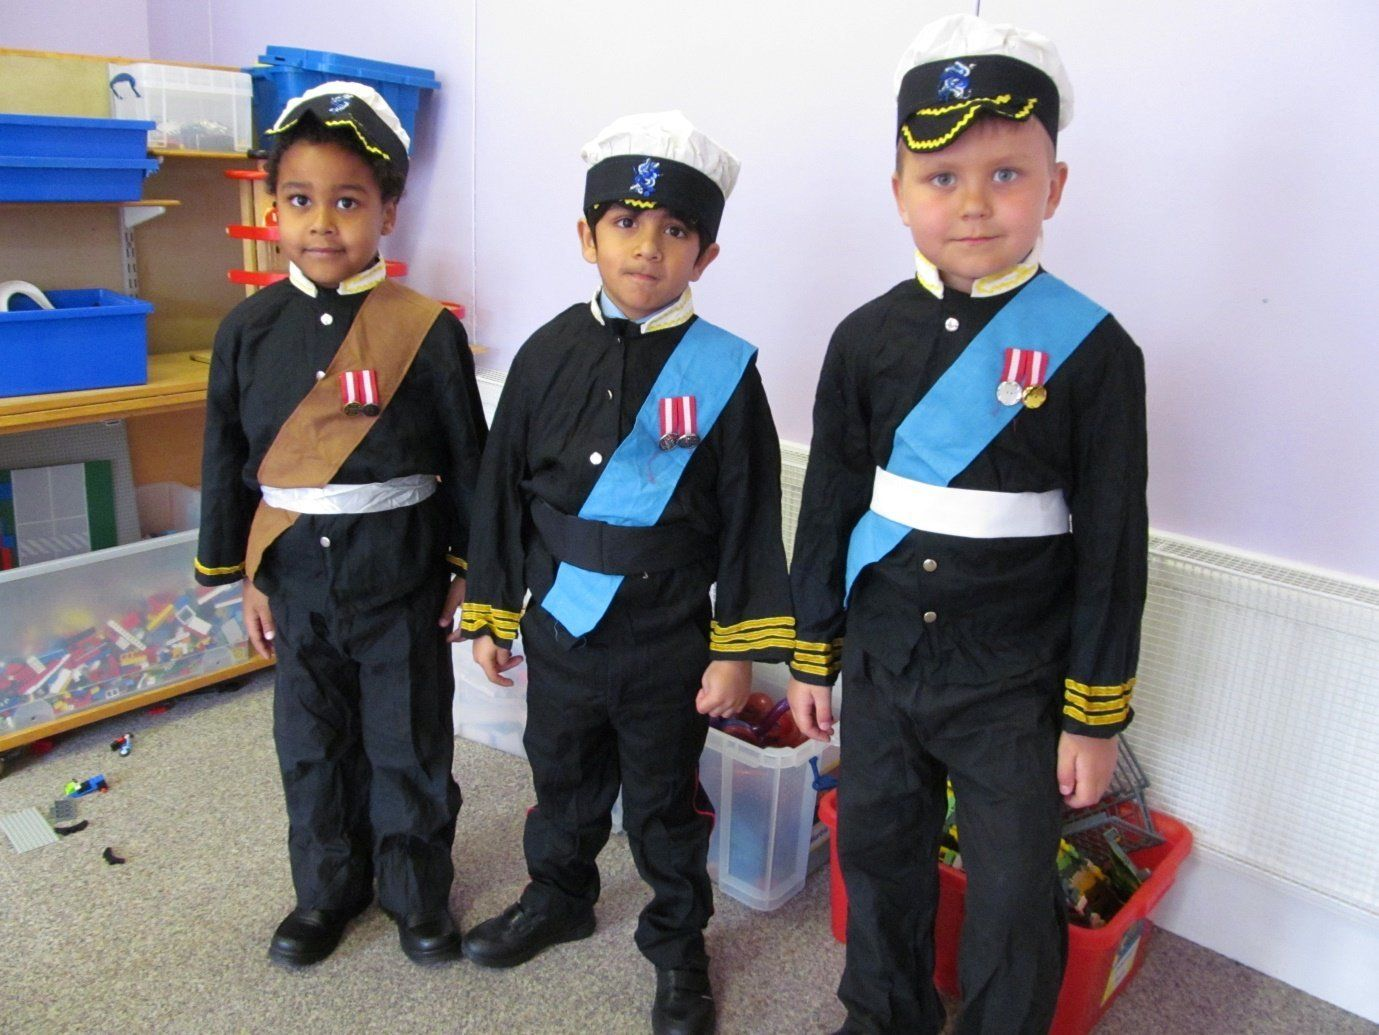 Some of the students getting into character ready for the Long Walk procession. From left to right, students dressed up as Prince William, Prince Harry and Prince Charles.